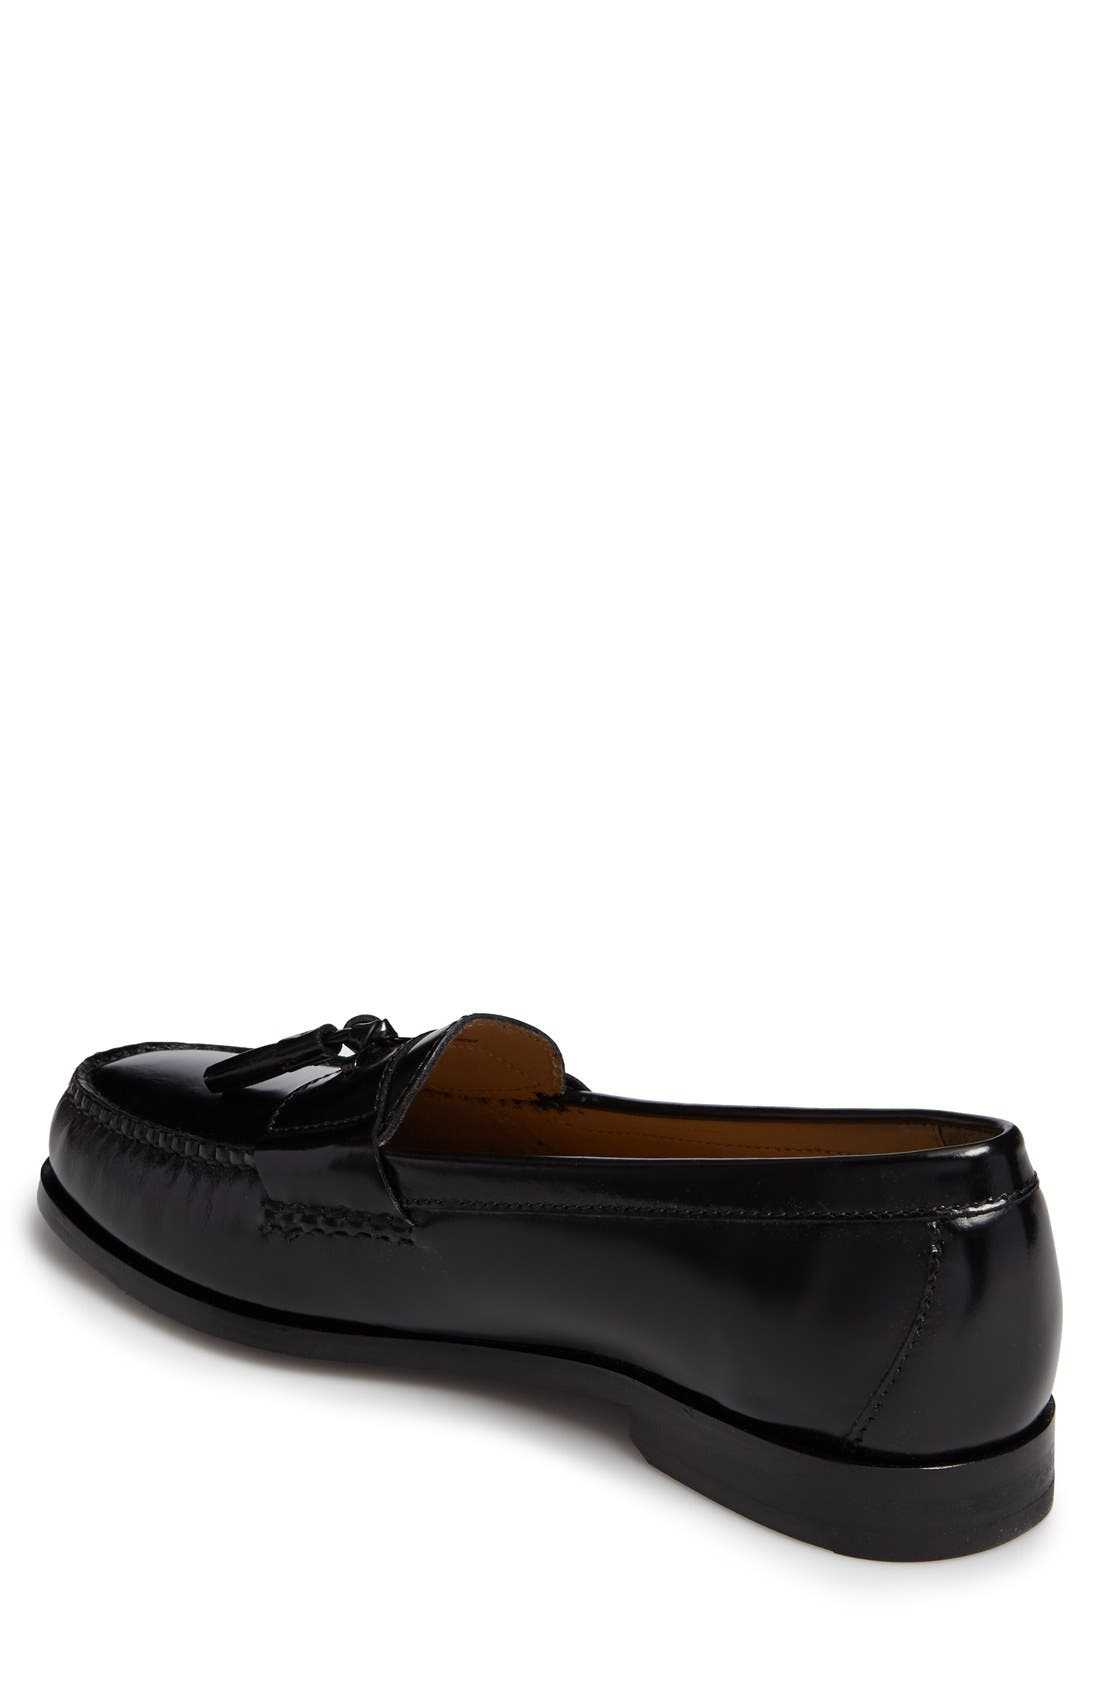 Alternate Image 2  - Cole Haan 'Pinch Grand' Tassel Loafer (Men)